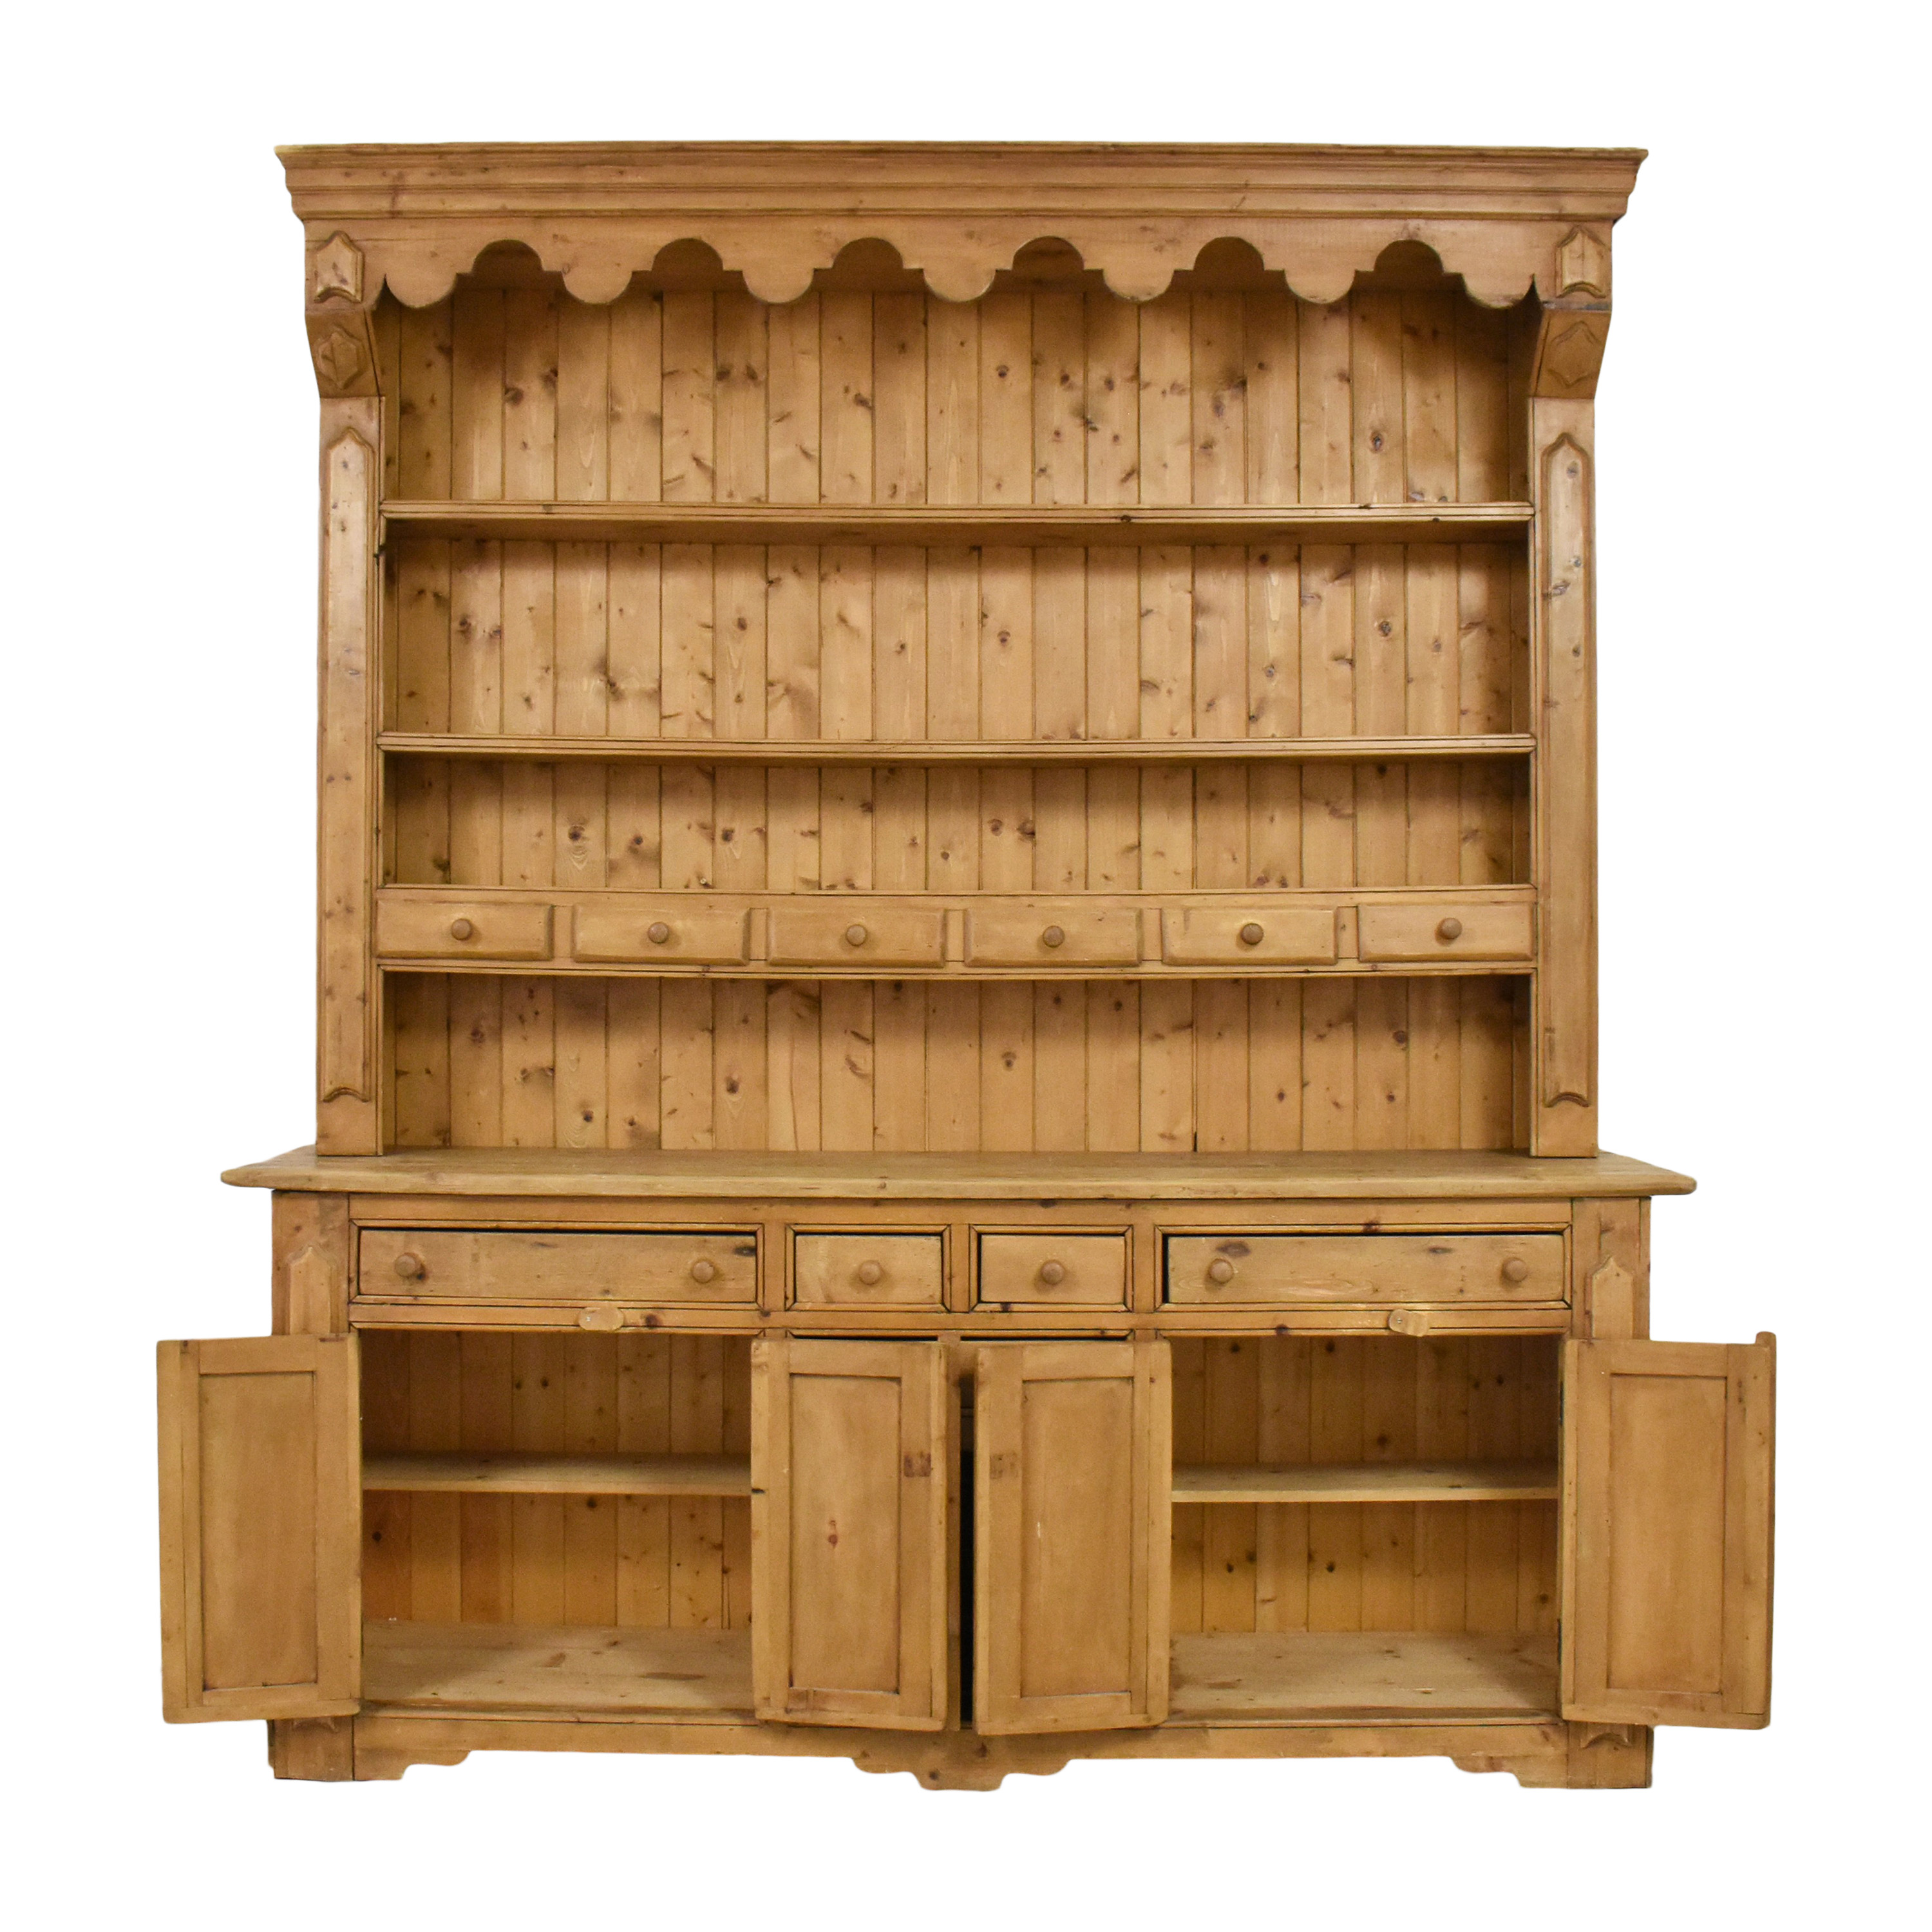 ABC Carpet & Home ABC Carpet & Home Sideboard with Hutch nj